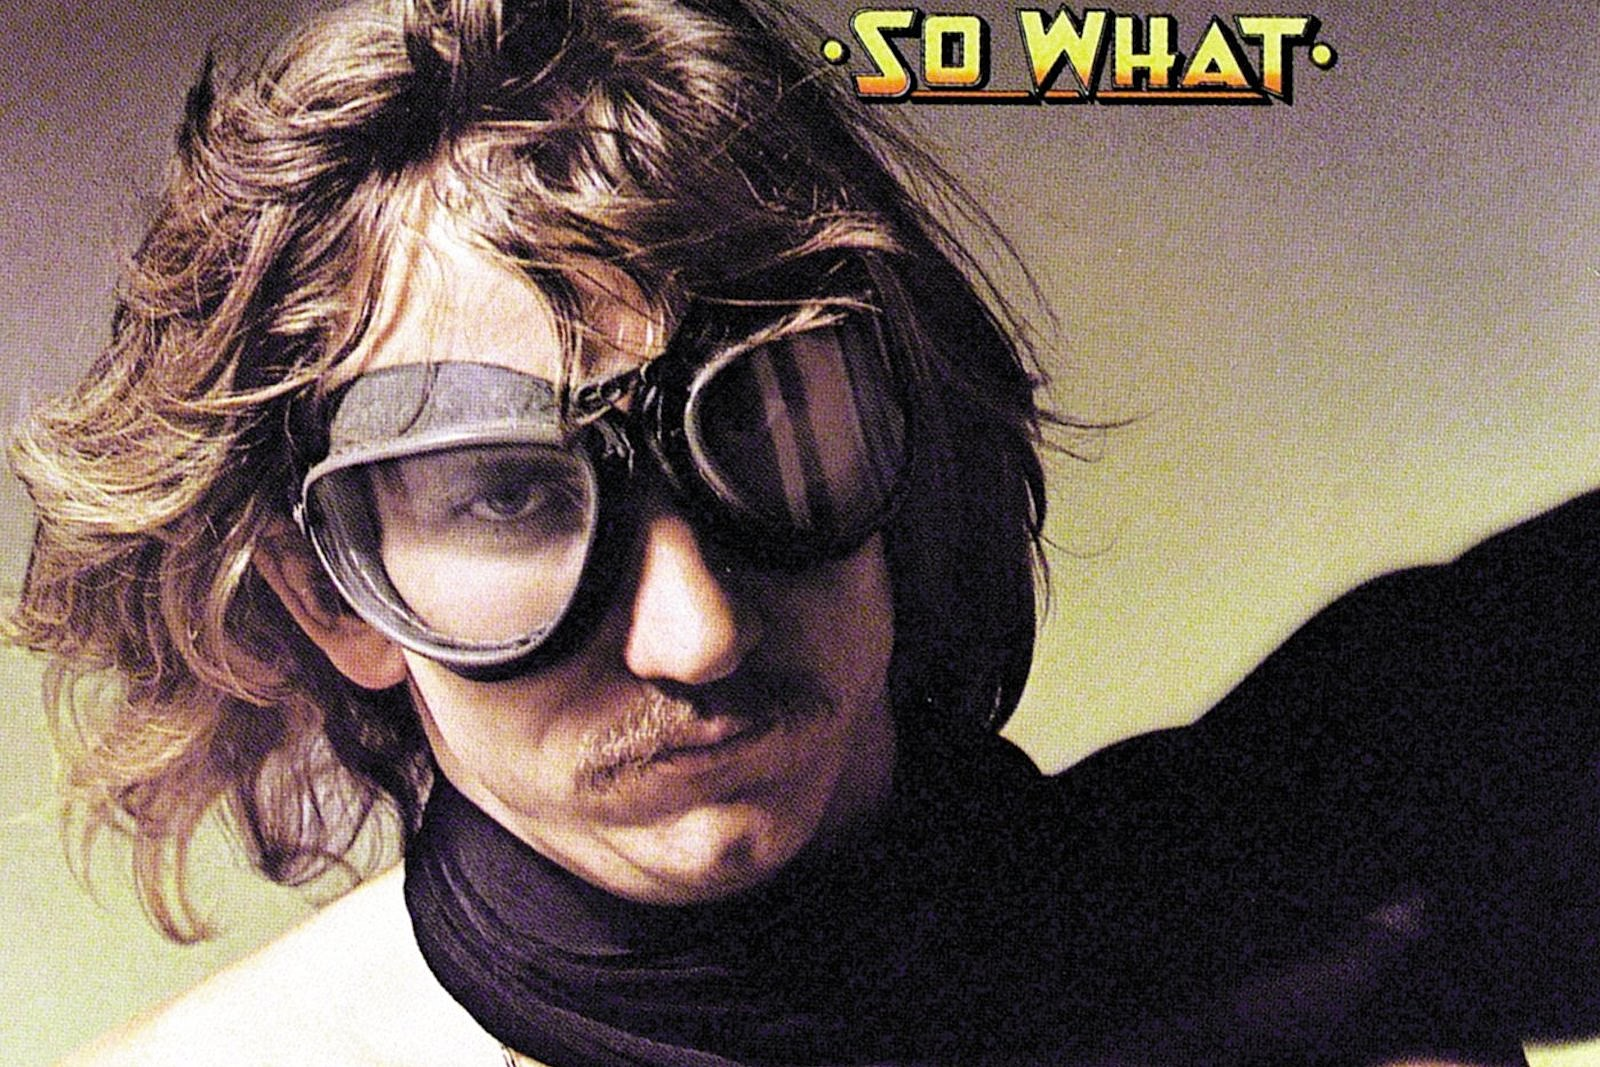 45 Years Ago: Why Joe Walsh Got Serious With 'So What'